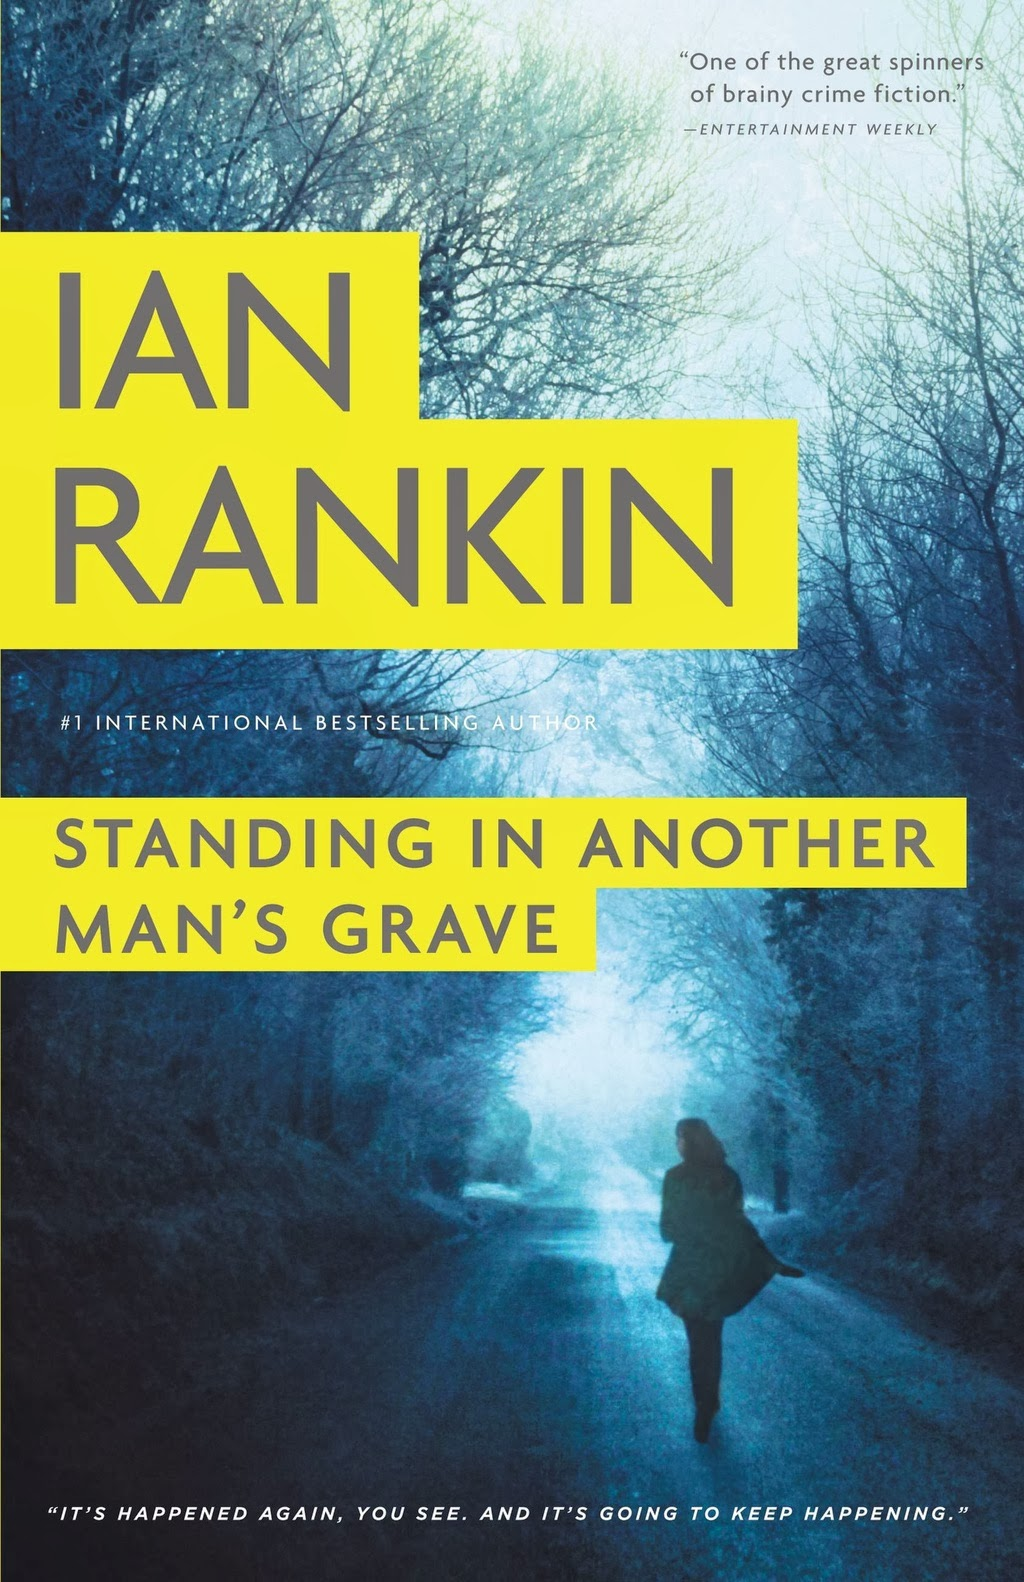 http://discover.halifaxpubliclibraries.ca/?q=title:standing%20in%20another%20man%27s%20grave